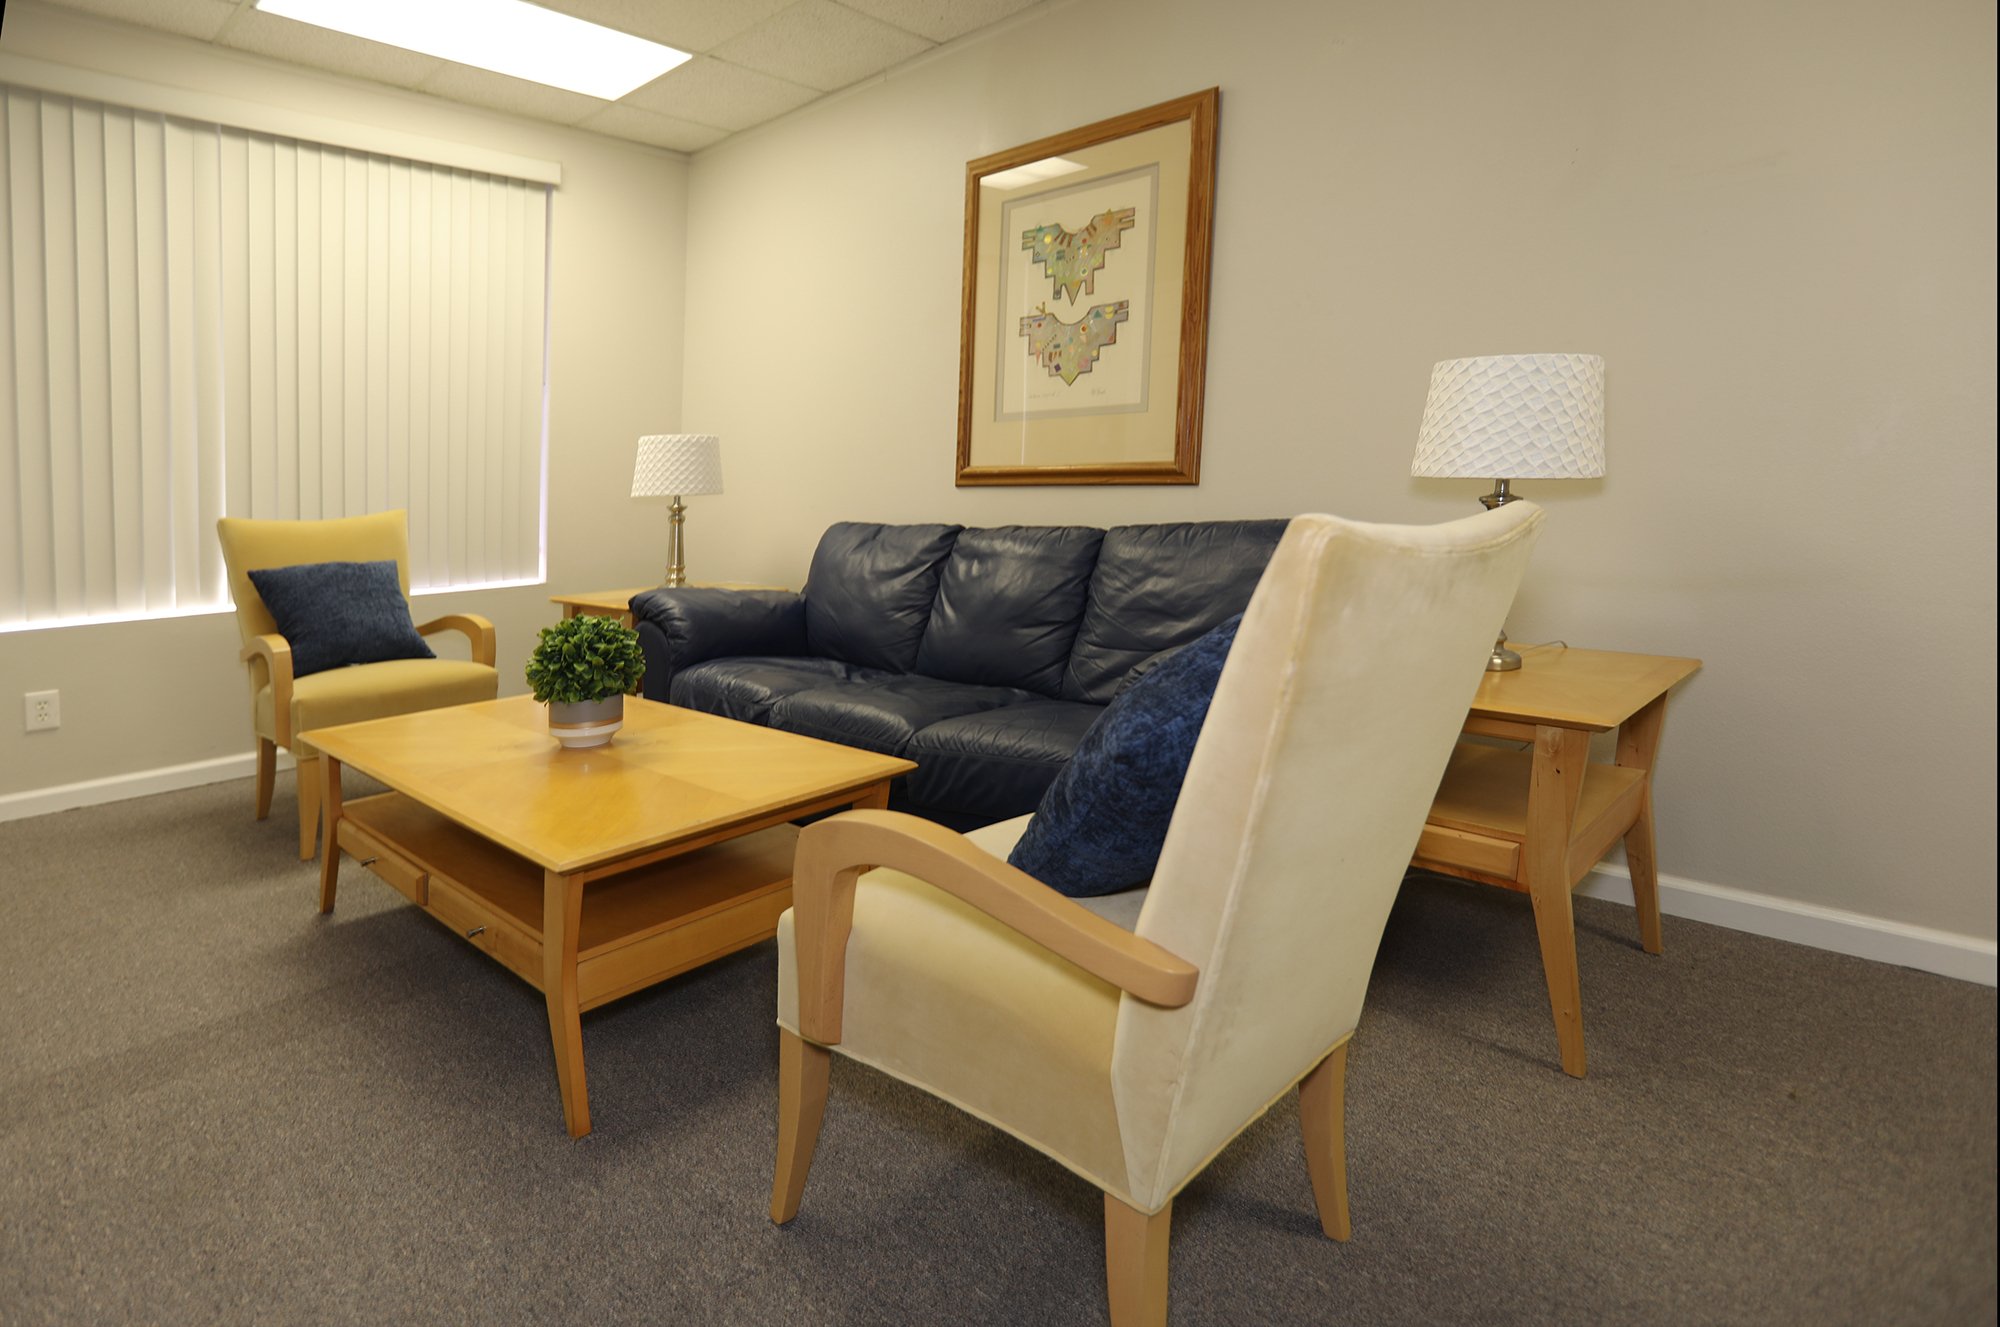 Palm Harbor drug and alcohol treatment center